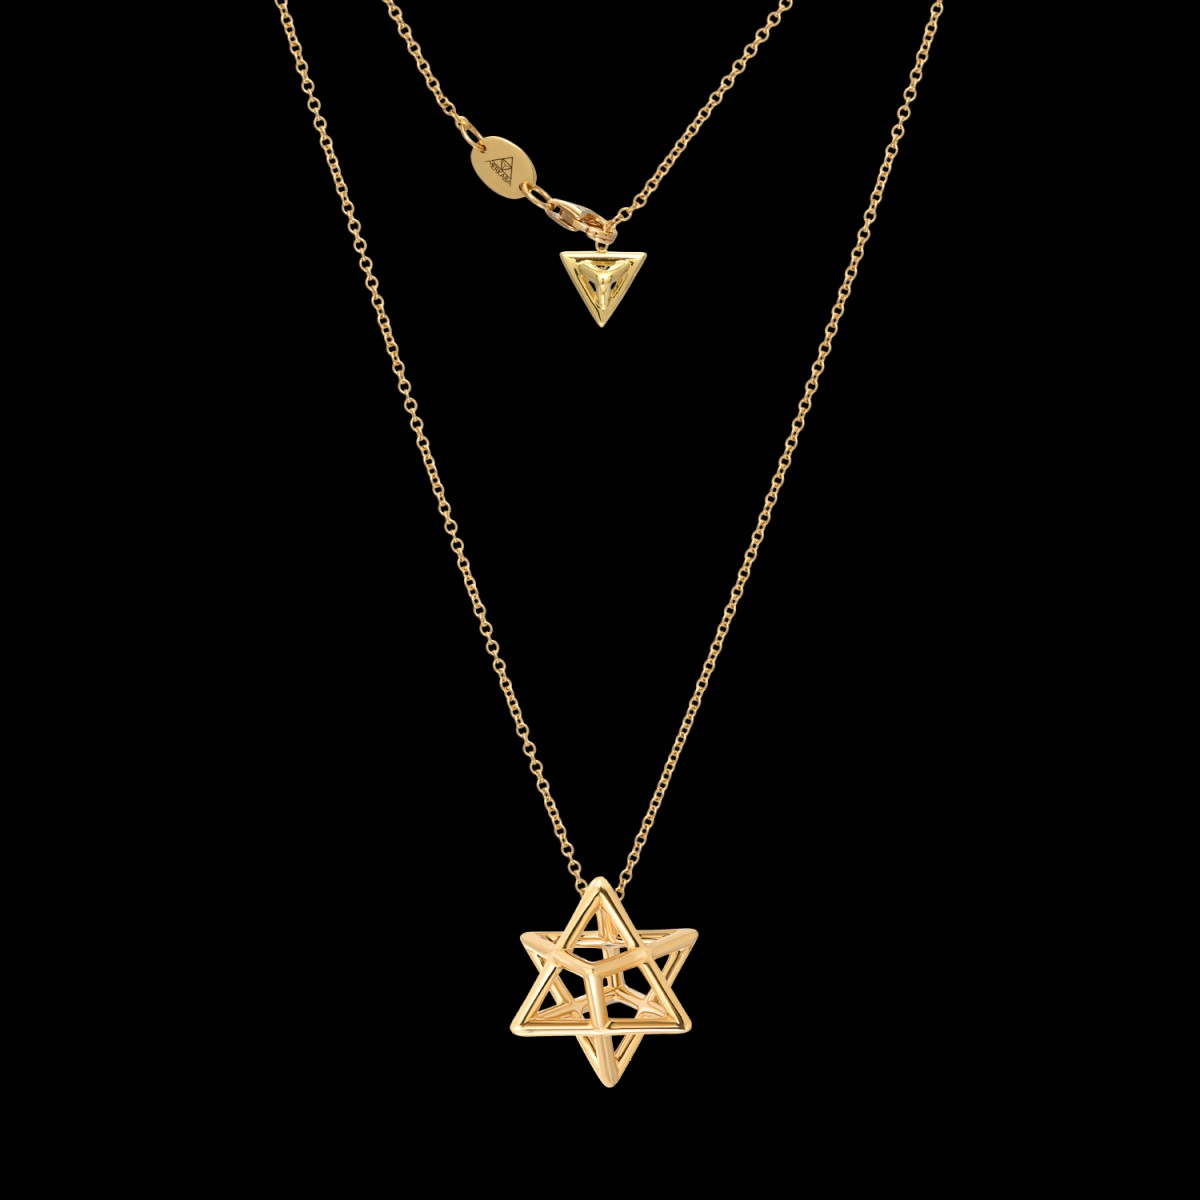 Merkaba Gold Pendant Necklace | Merkaba Fine Jewelry